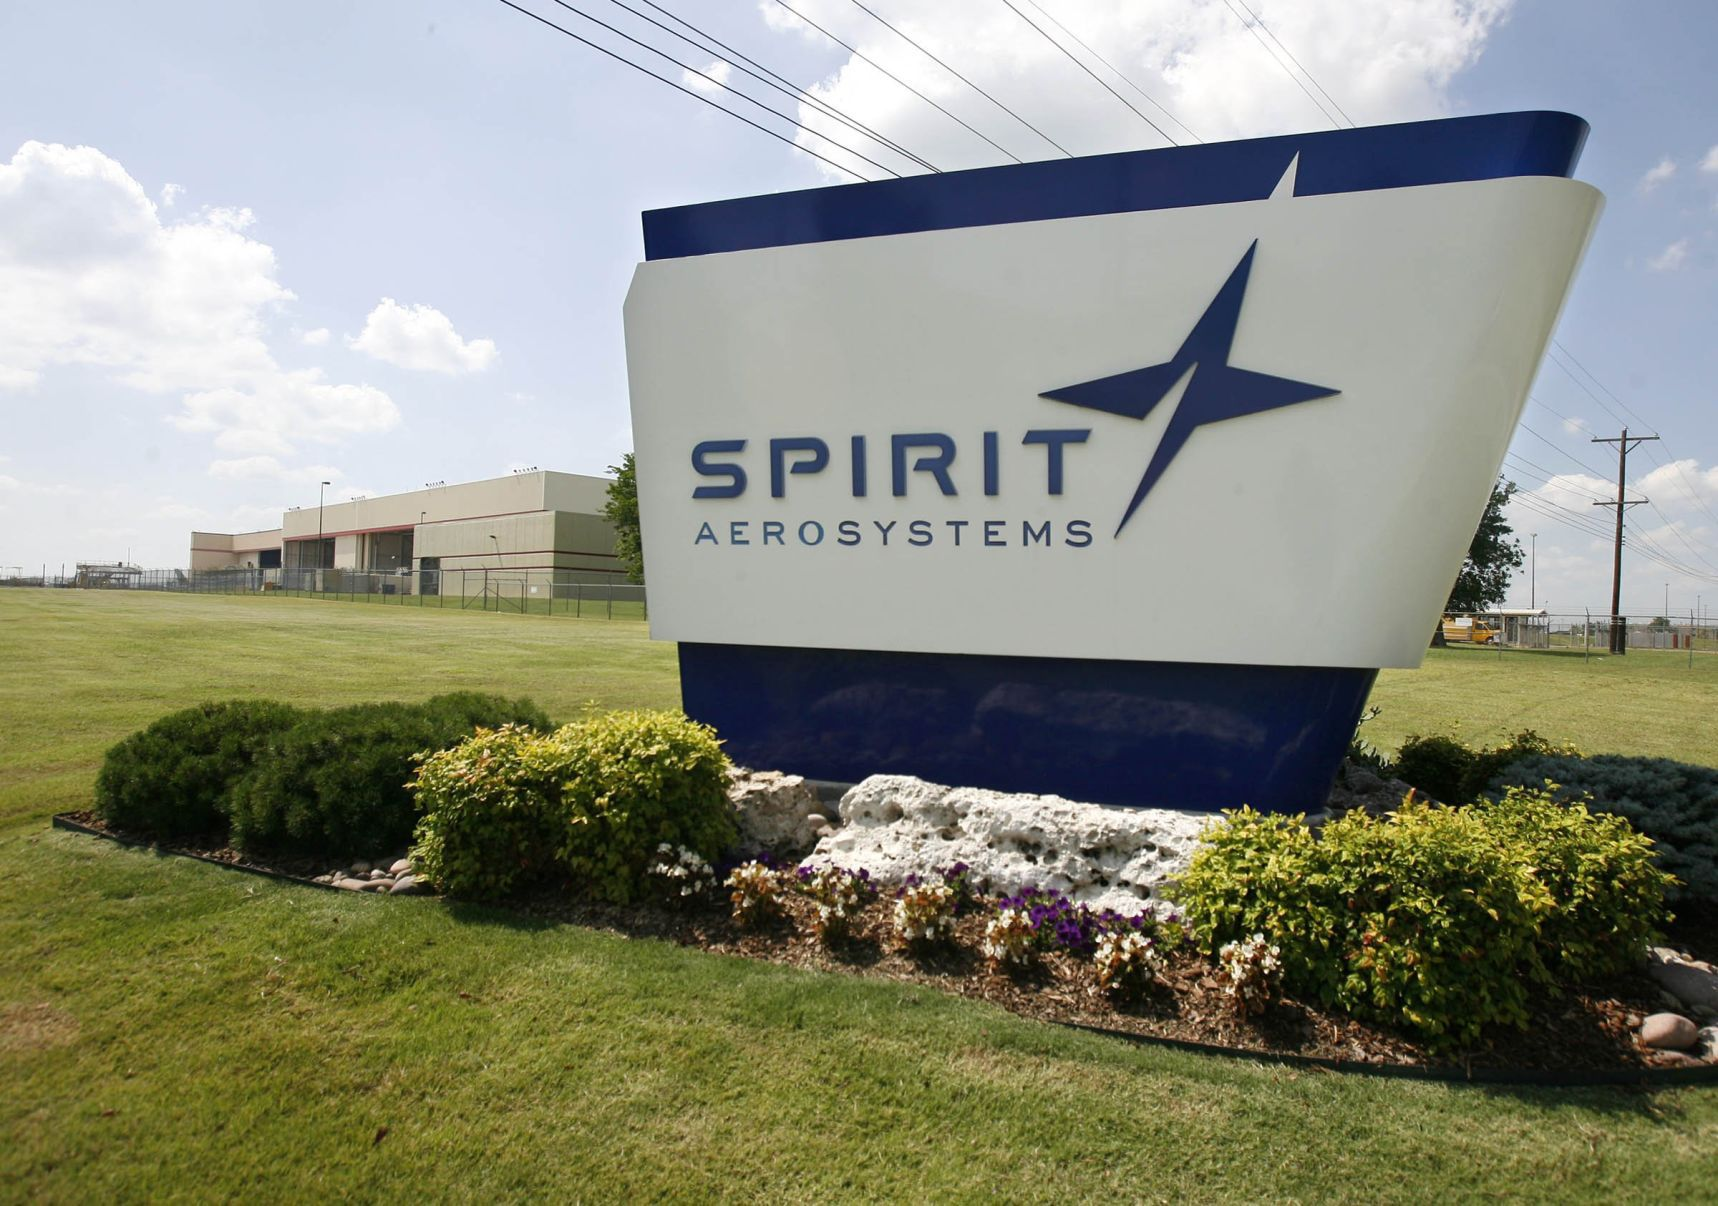 Spirit Aerosystems Holdings (SPR) Getting Positive Press Coverage, Analysis Shows